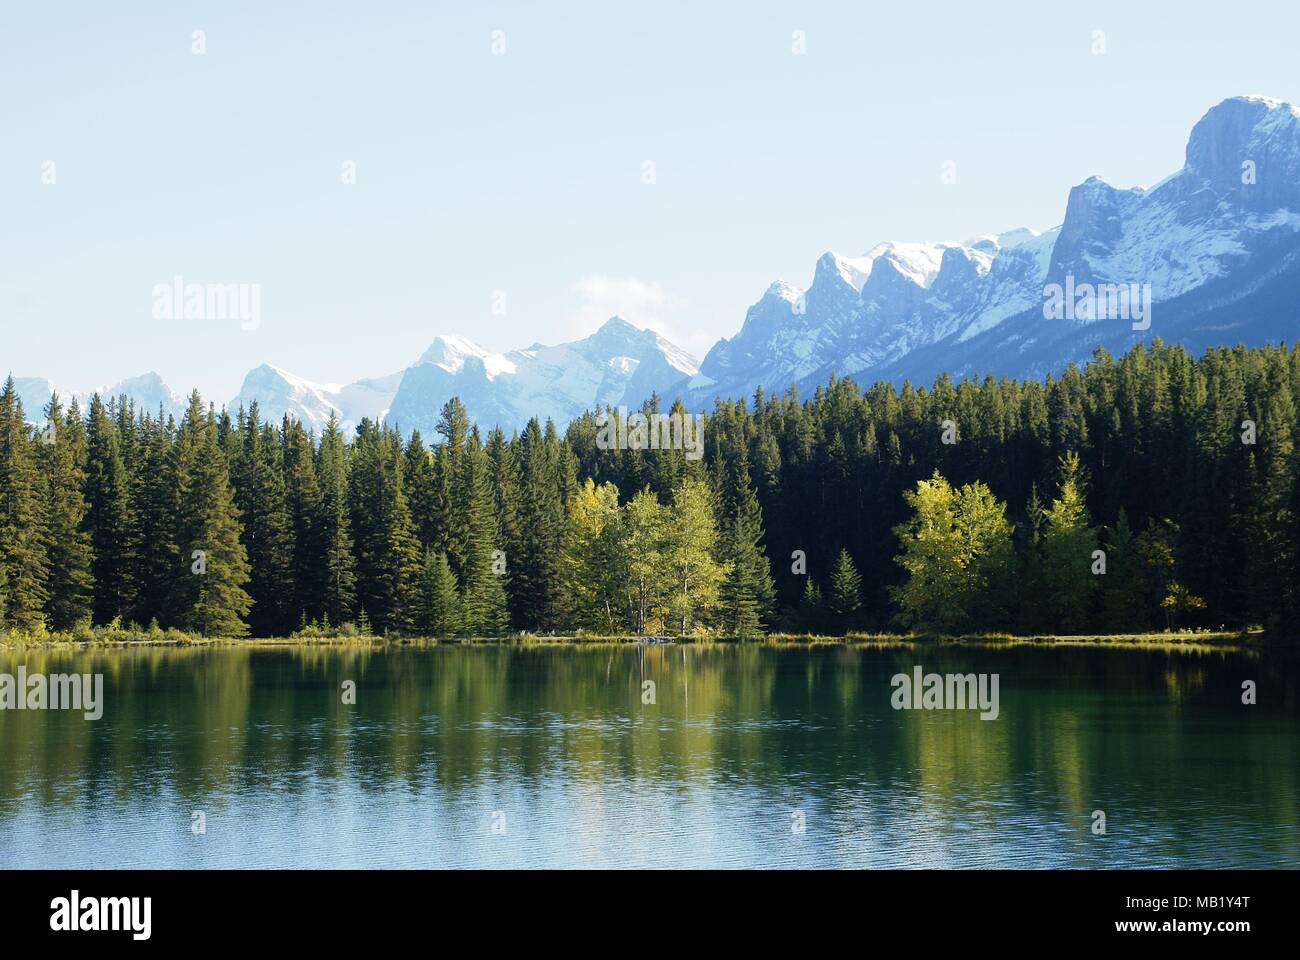 landscapes taken during holidays in Canada national parks Stock Photo